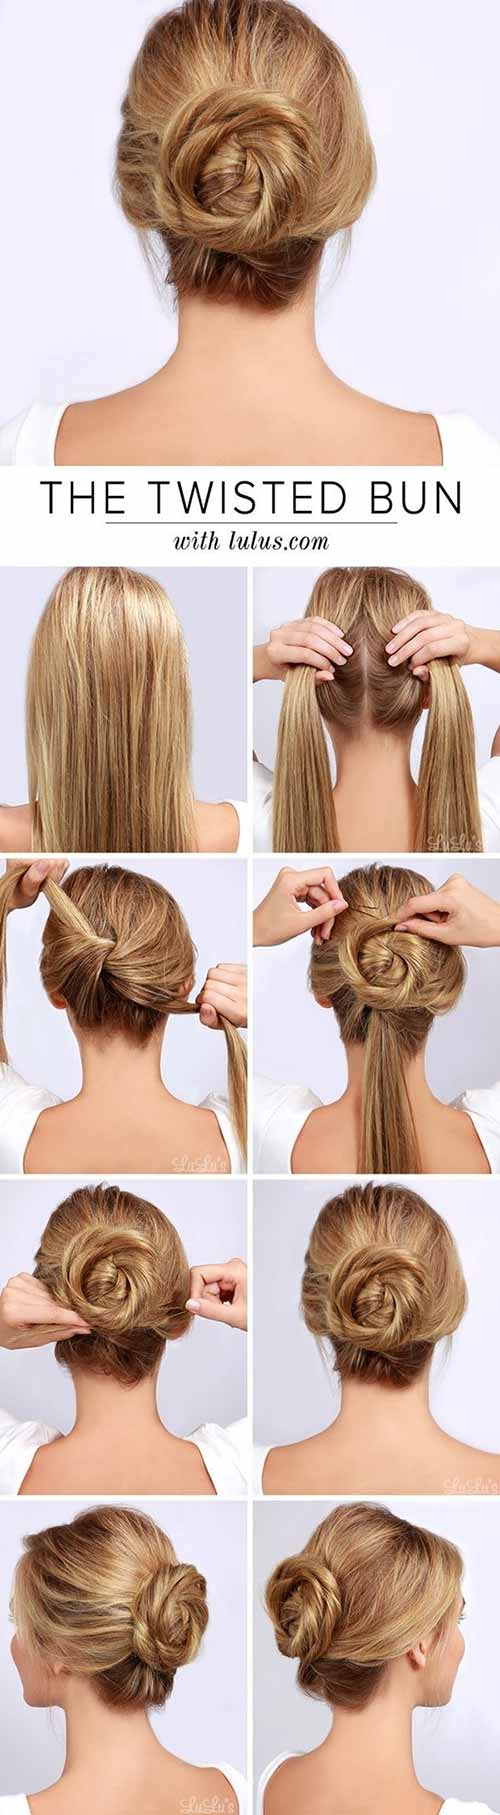 Updo Hairstyles - The Twisted Bun